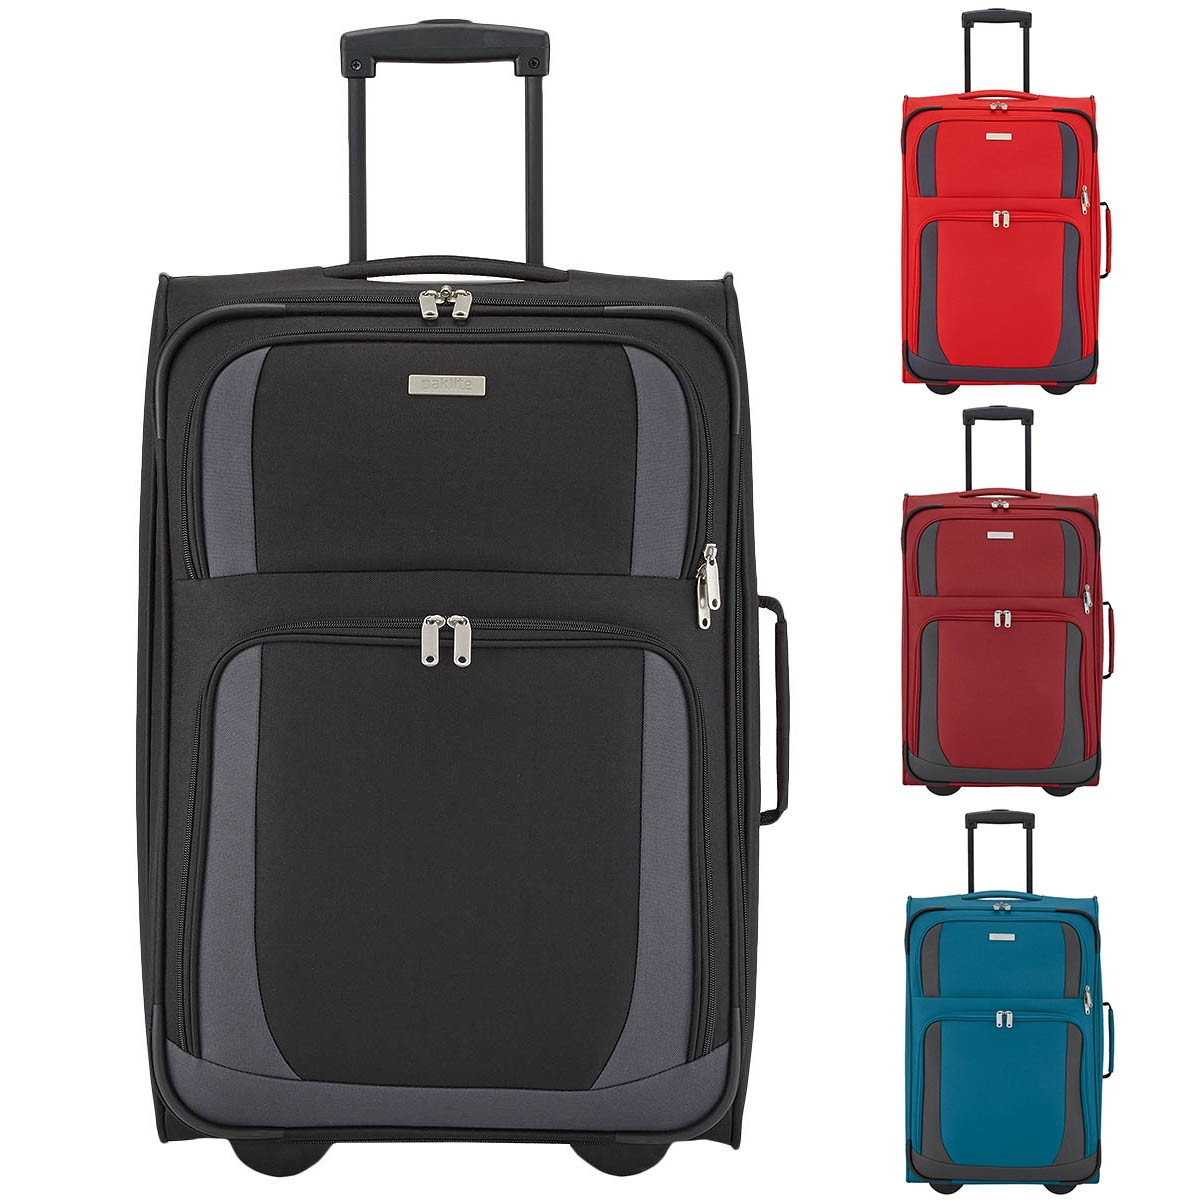 paklite by travelite rocco 2 rollen koffer trolley weichgep ck luggage 61cm ebay. Black Bedroom Furniture Sets. Home Design Ideas